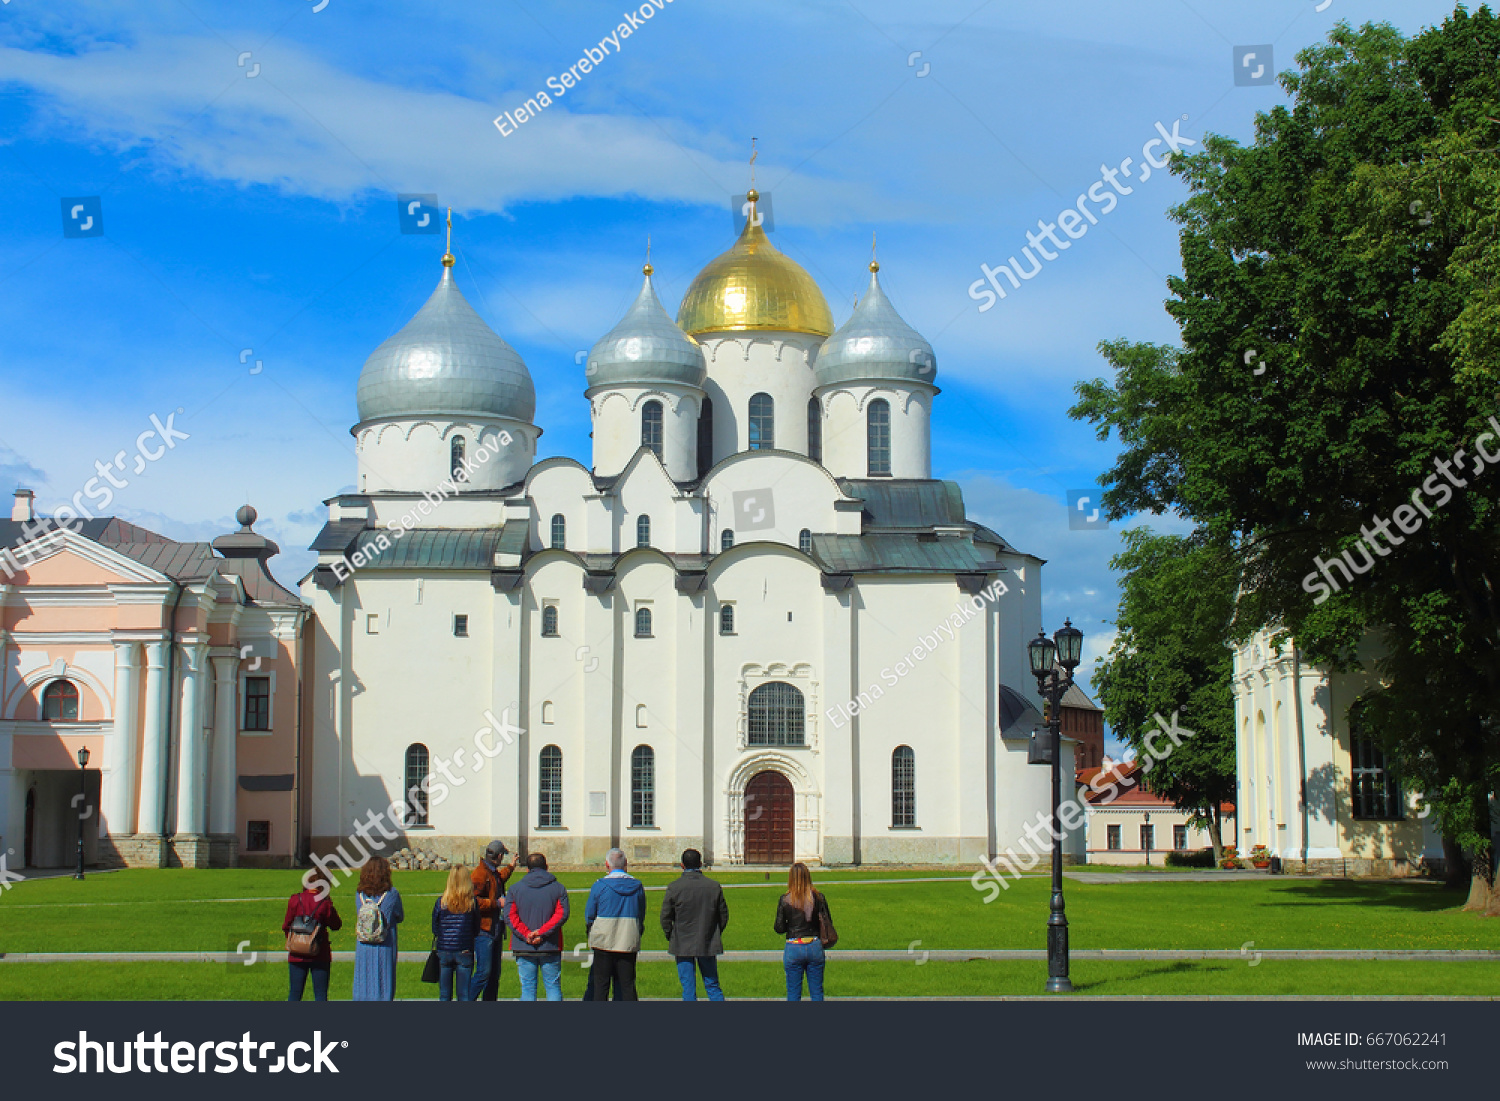 Veliky Novgorod: attractions. Description and photo 9